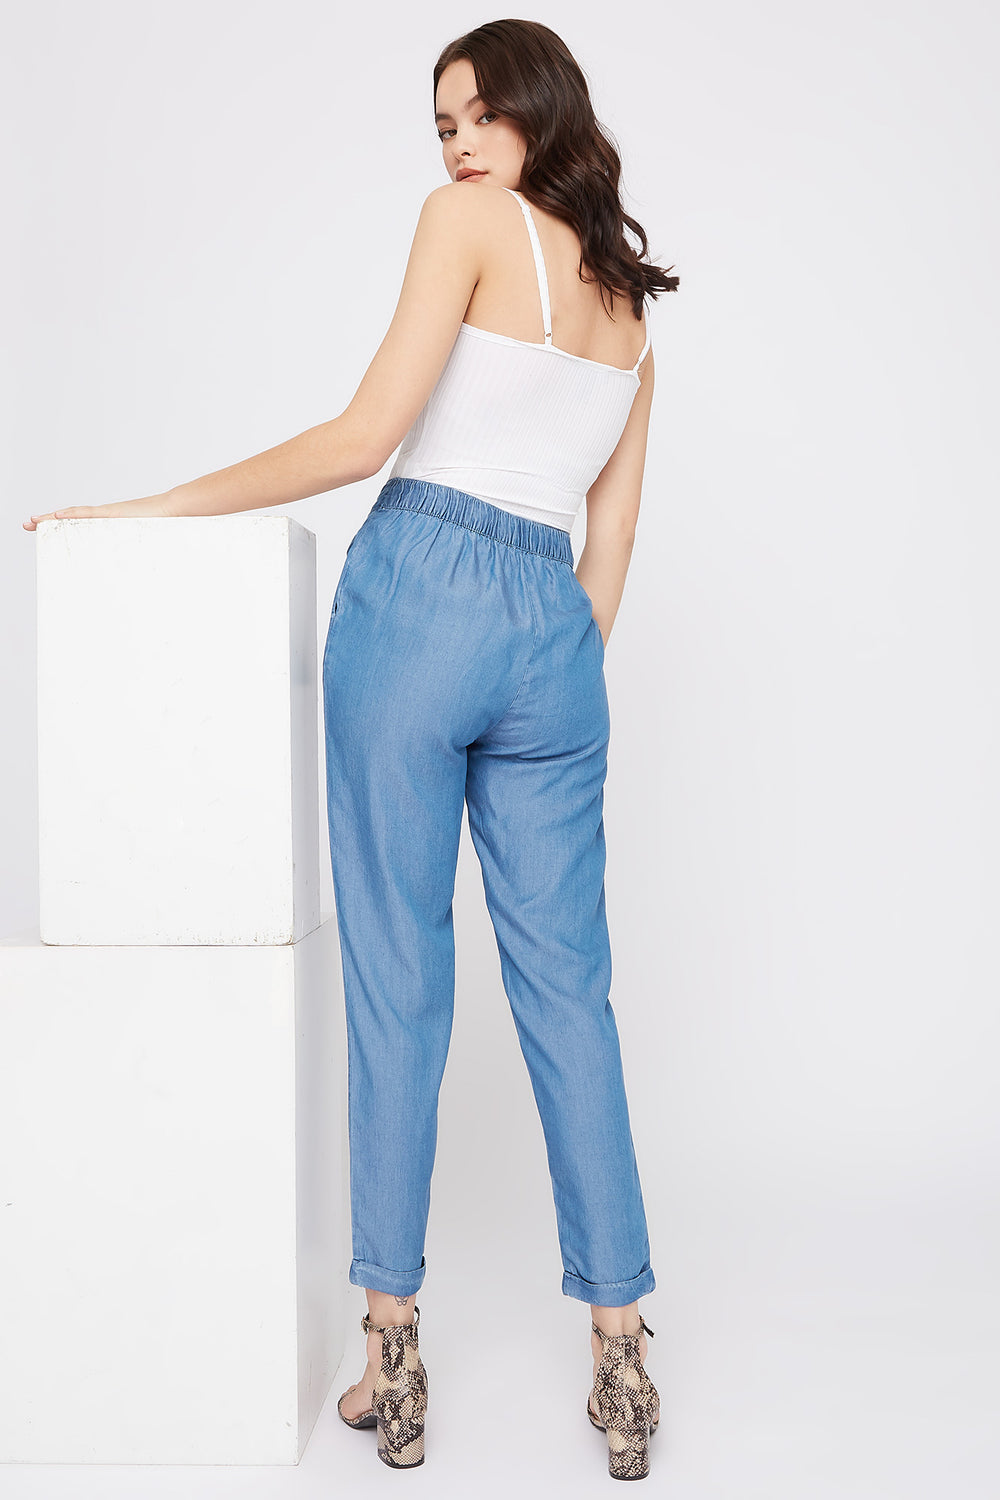 Self-Tie Roll-Up Pant Medium Blue